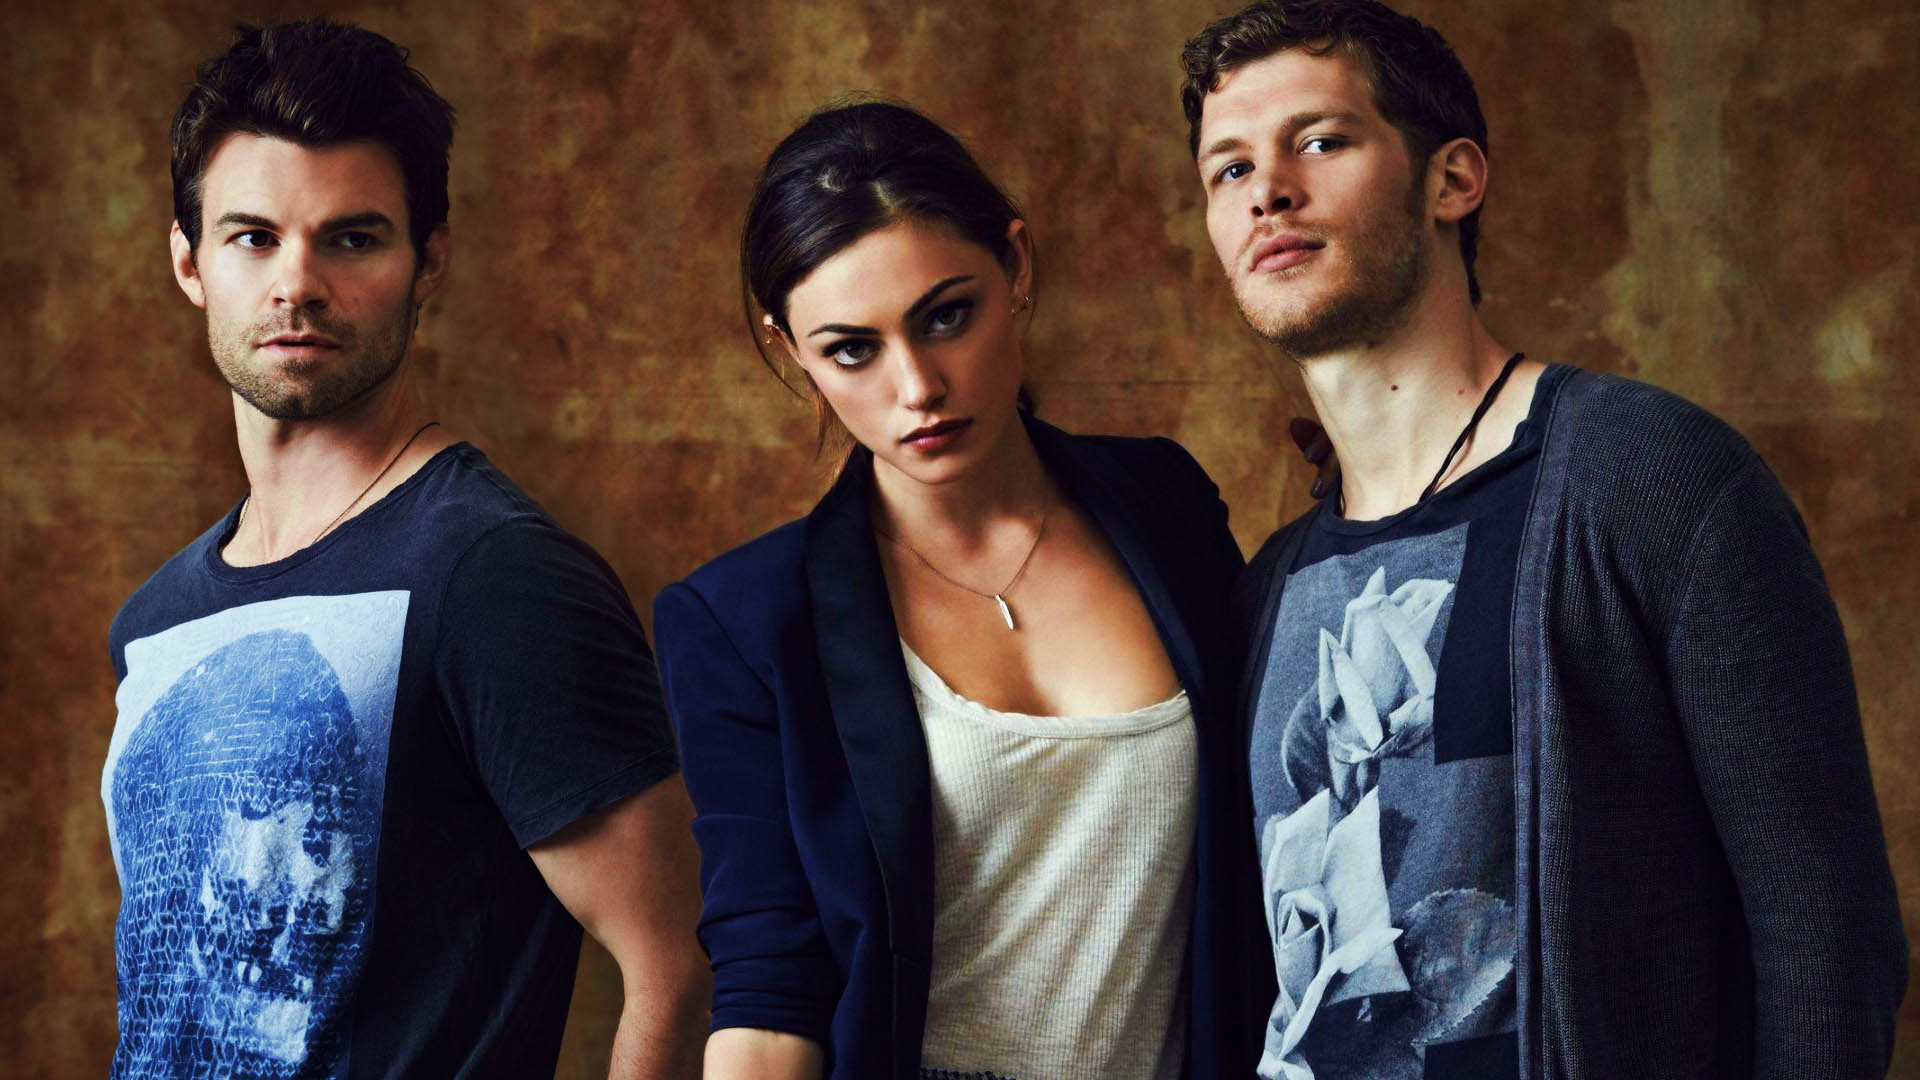 The Originals Season 4 Promo 3